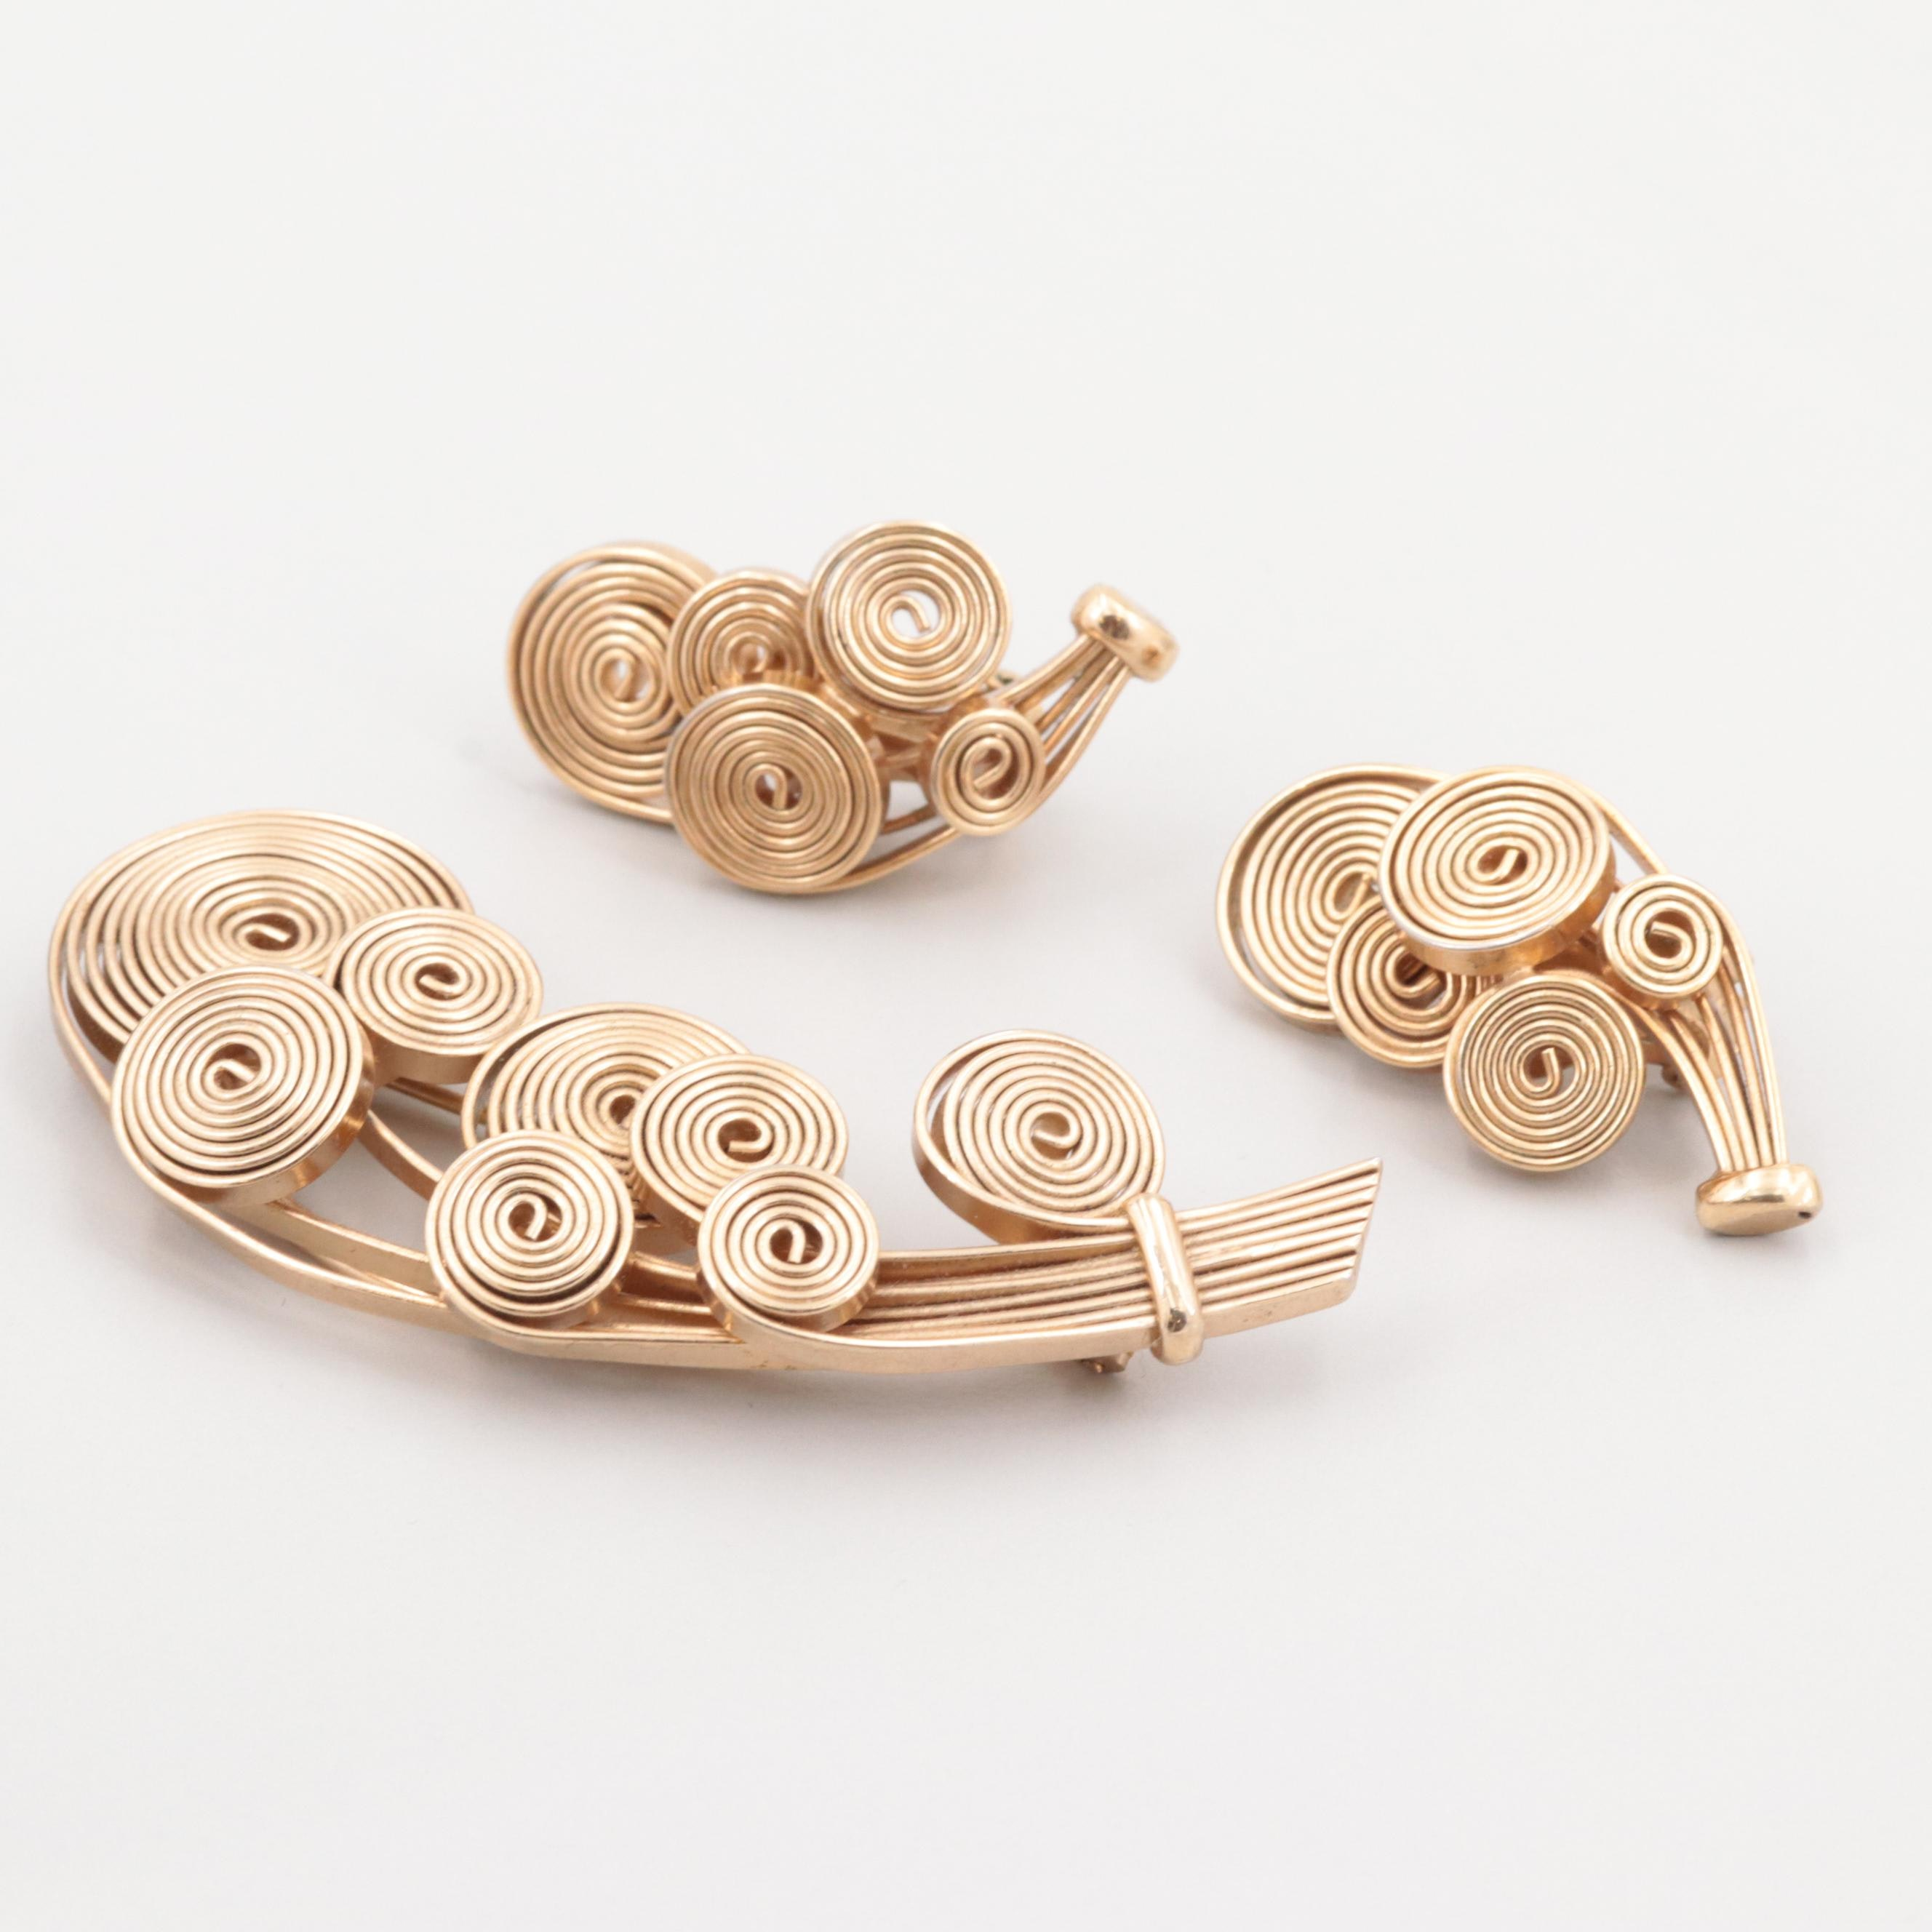 Napier Gold Tone Brooch and Clip-On Earring Set